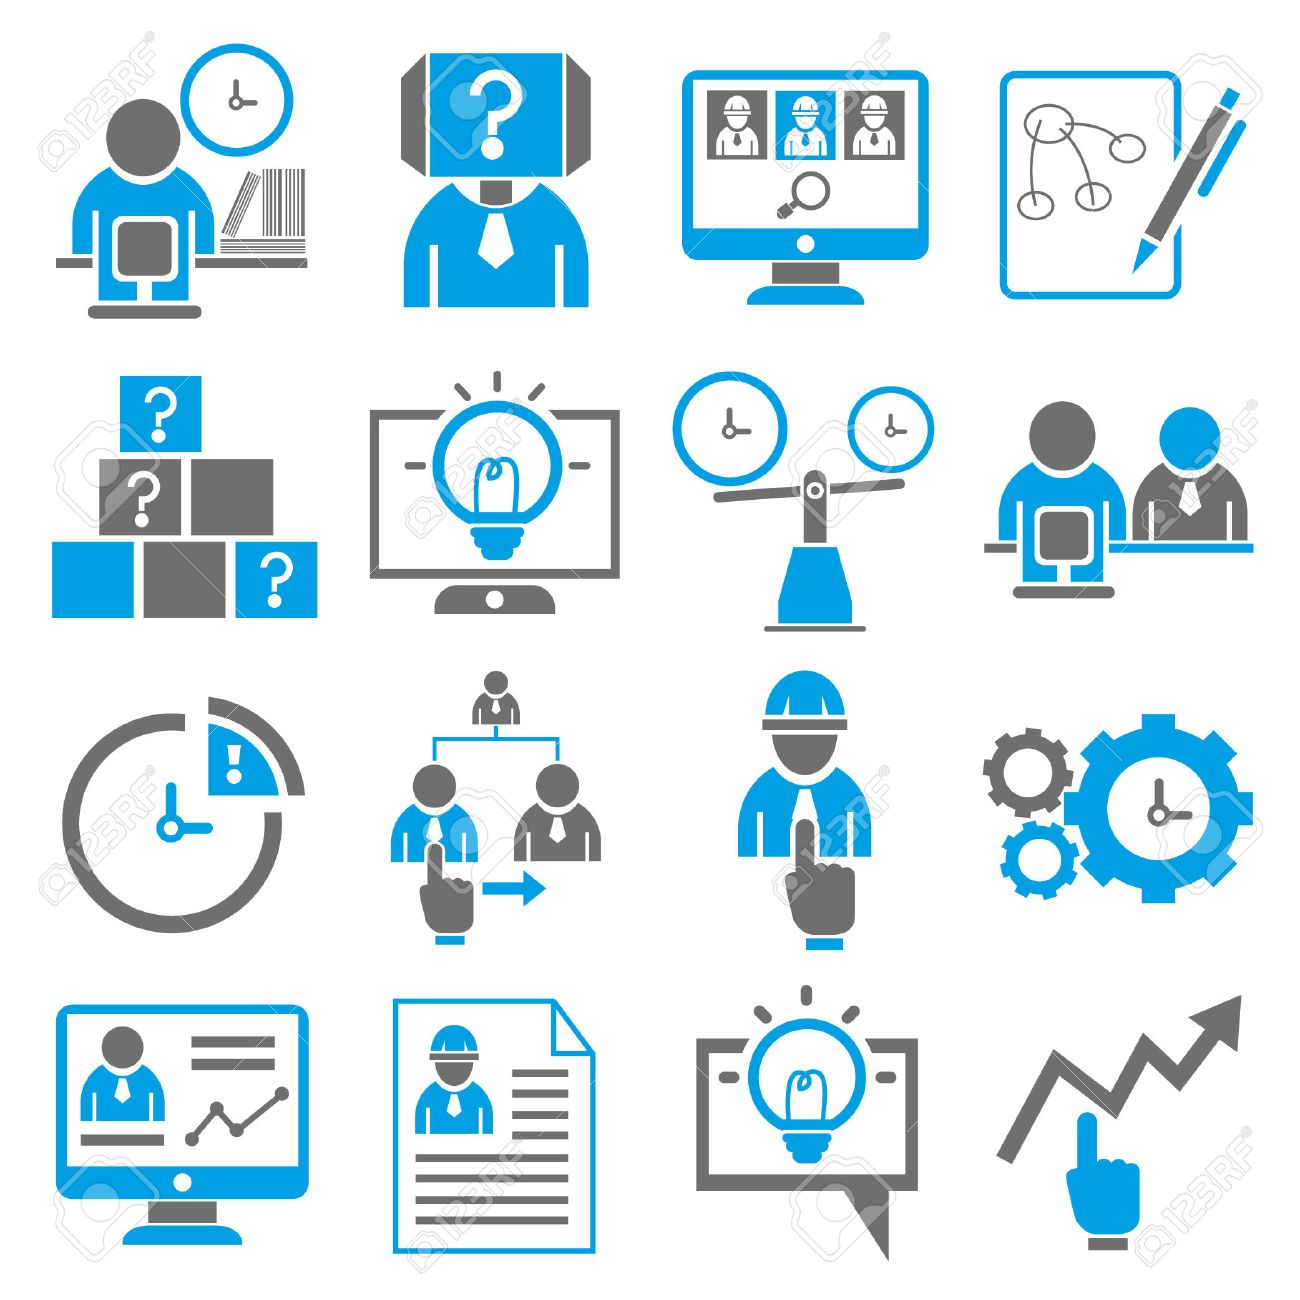 business icons, human resource management icons Stock Vector - 23521292